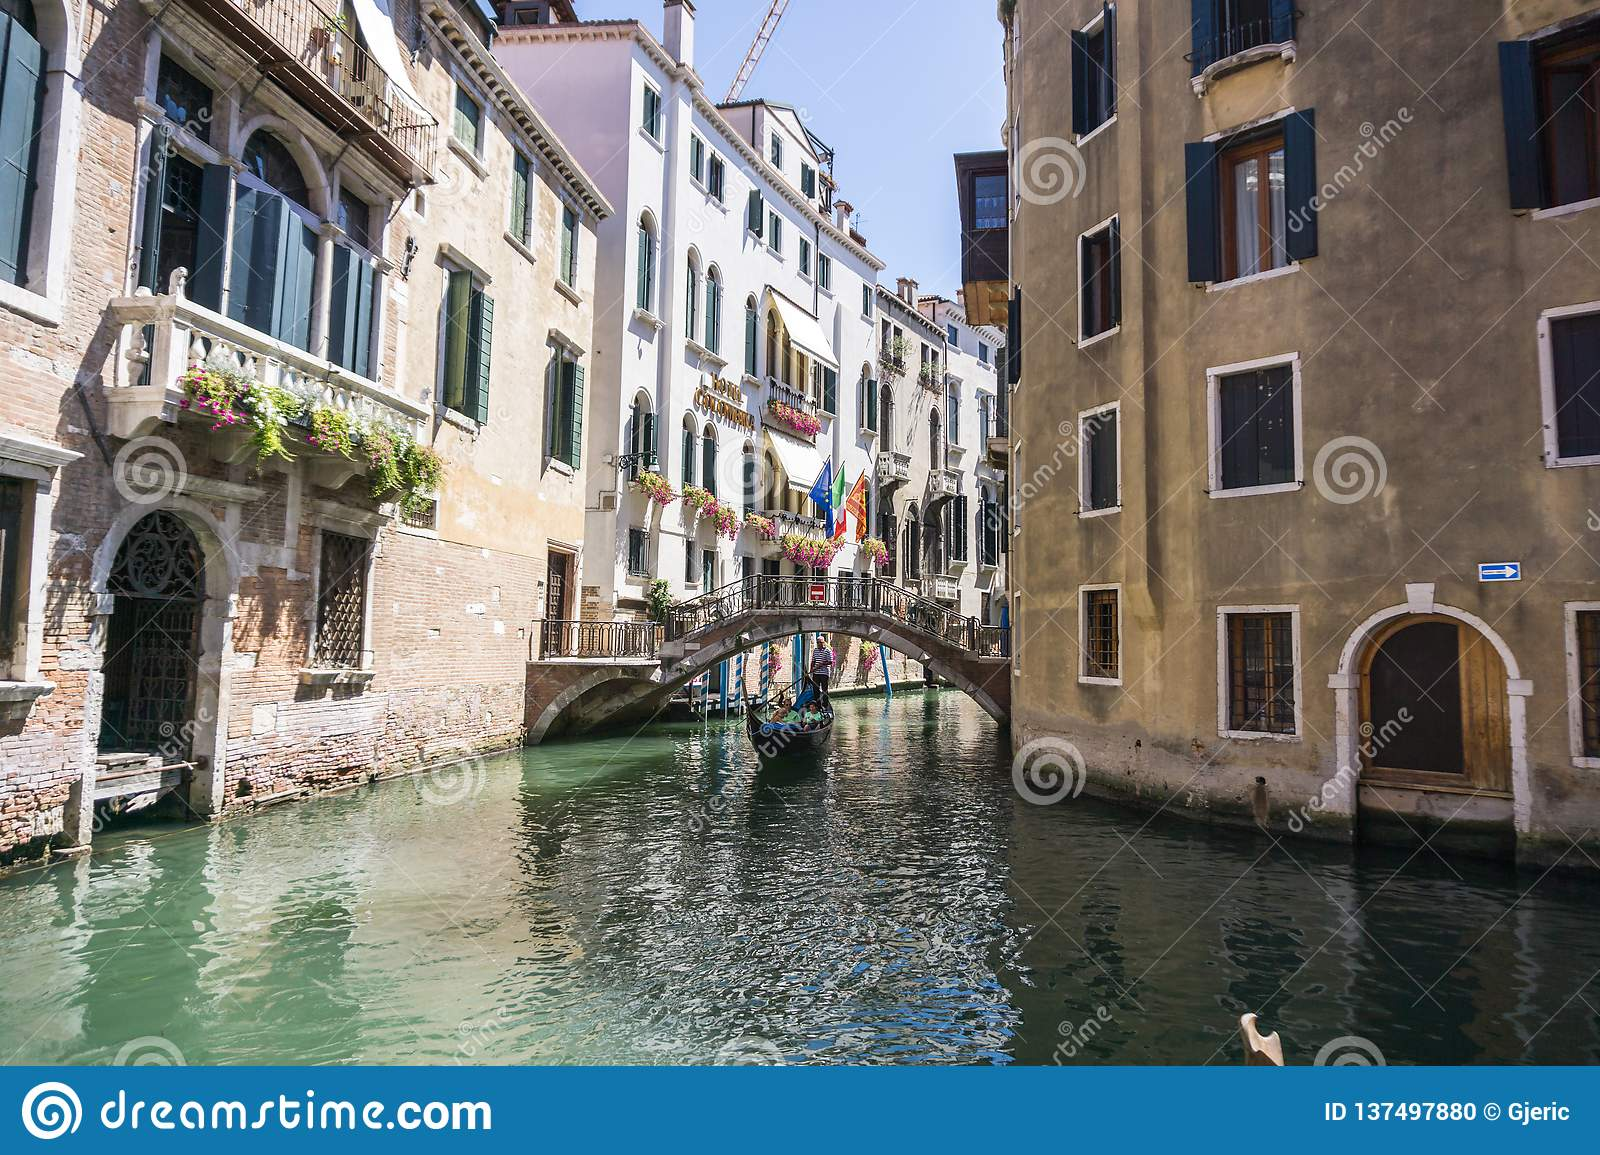 View of the Rio Marin Canal with boats and gondolas from the Ponte de la Bergami in Venice, Italy. Venice is a popular